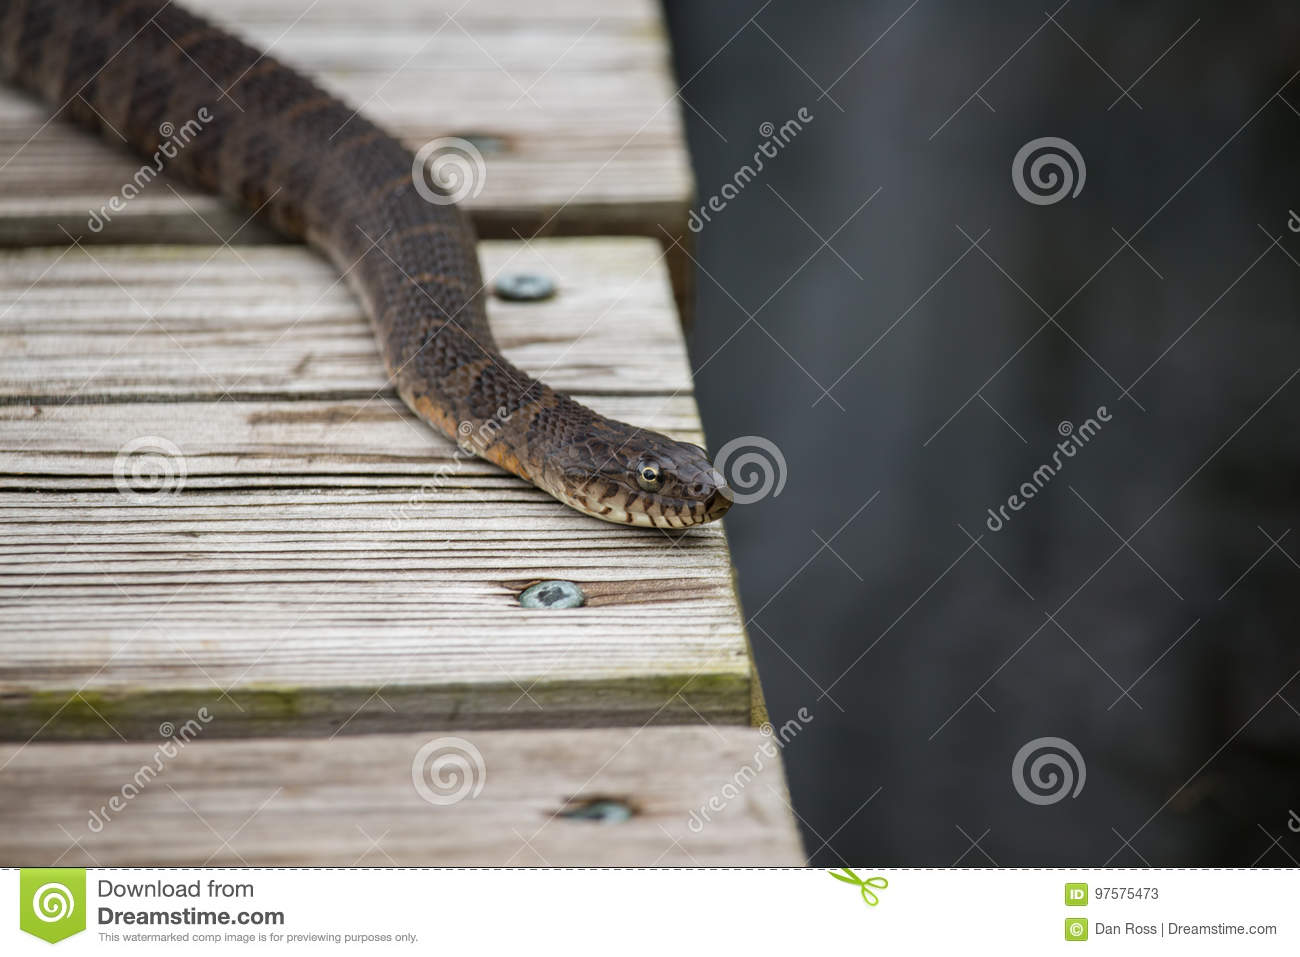 A common northern water snake rests on a pier by a lake.